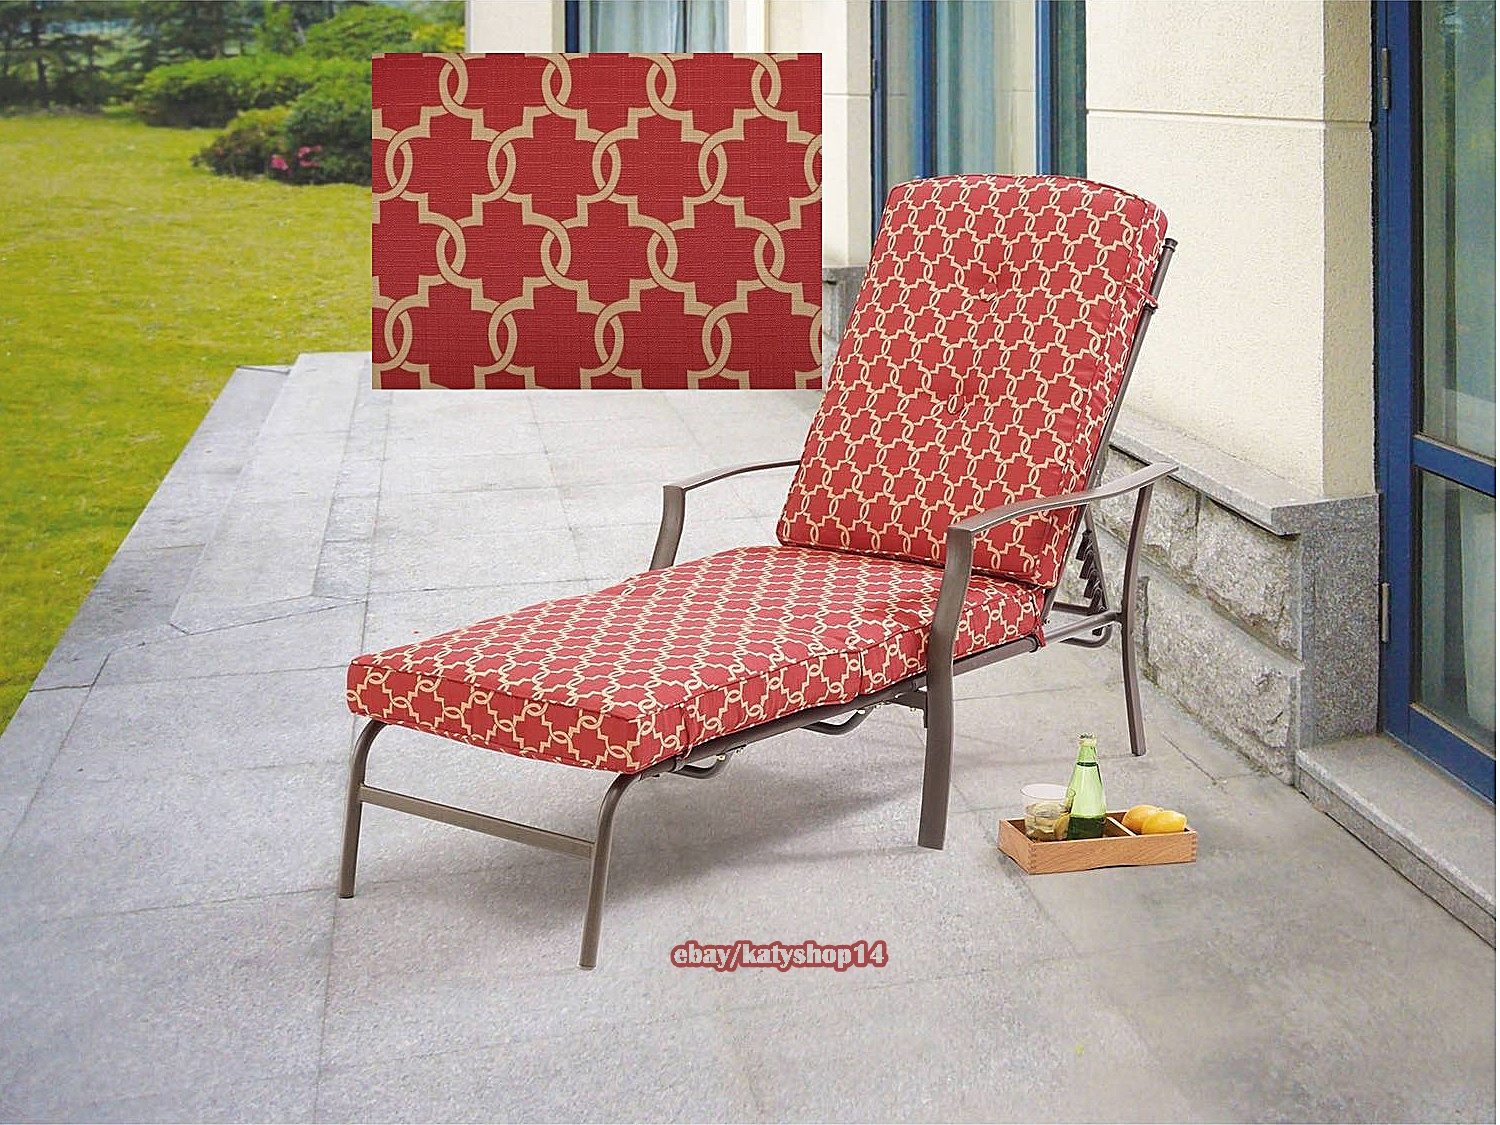 Patio chaise lounge outdoor relax chair adjustable back for Chaise relax